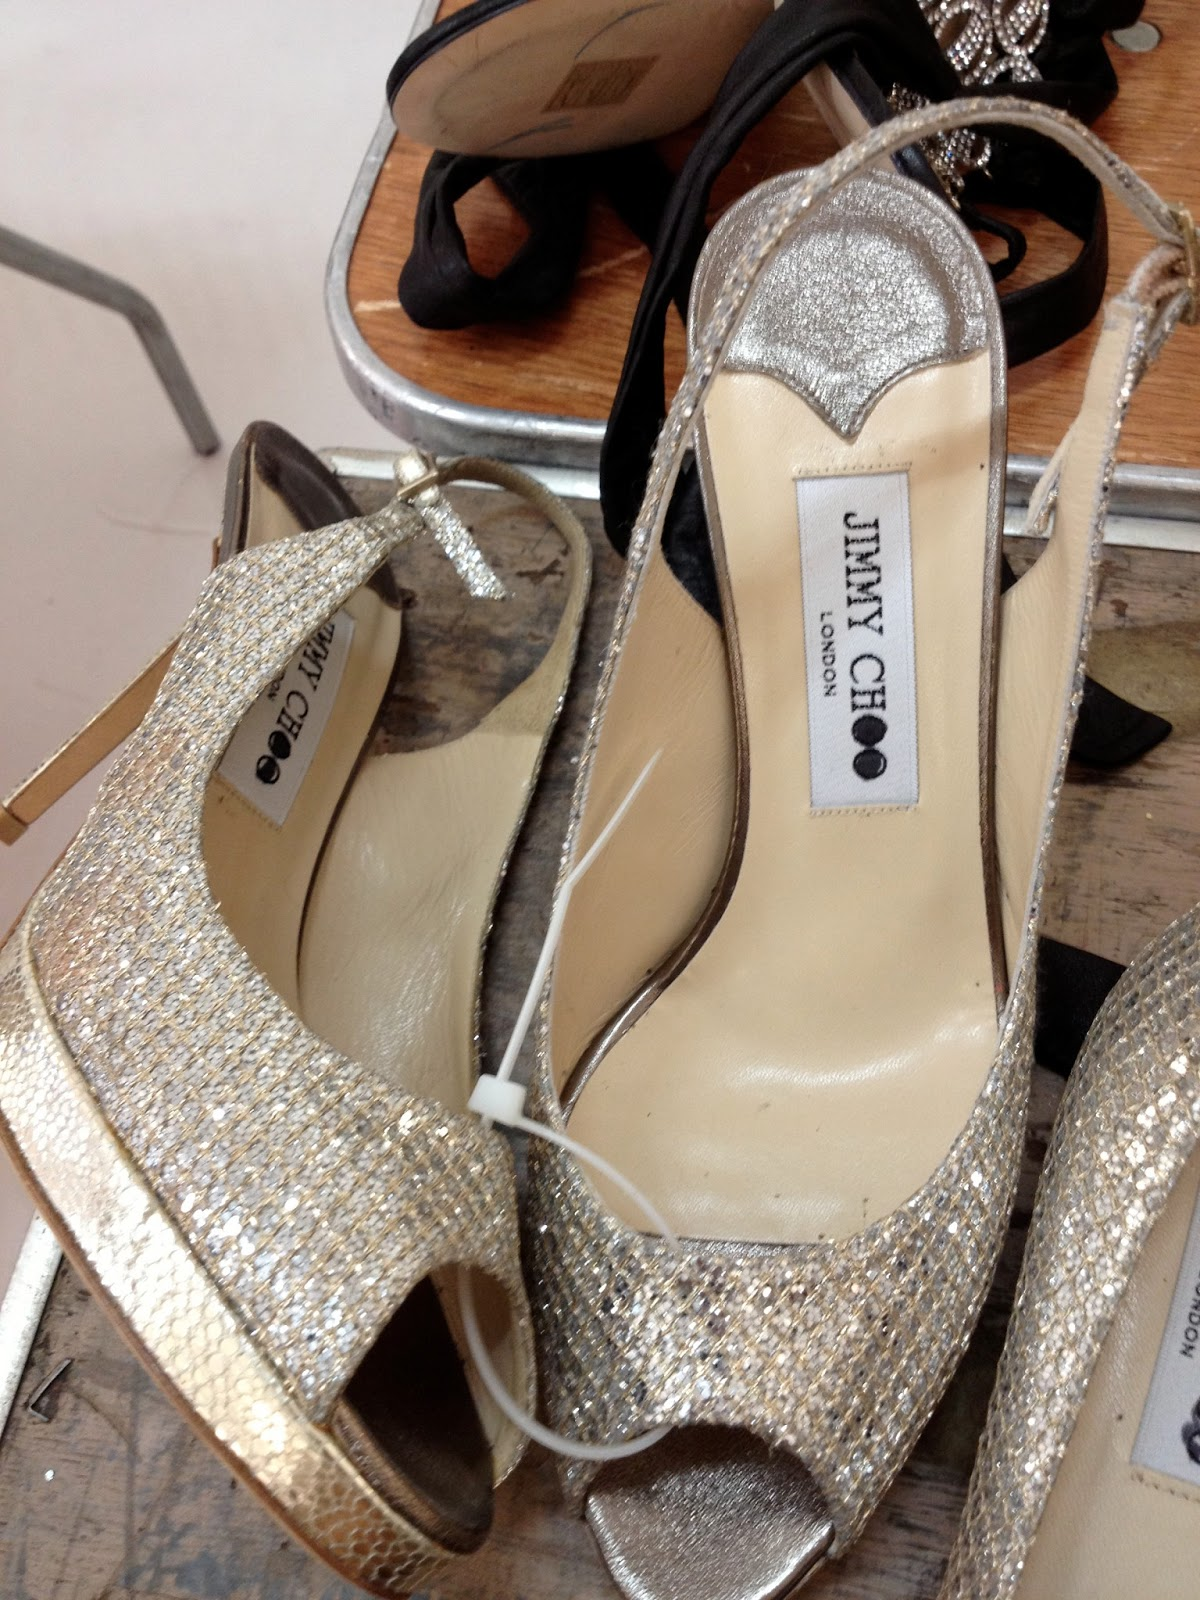 new york la keiko in pictures looking for bridal shoes at the jimmy choo sample sale may. Black Bedroom Furniture Sets. Home Design Ideas